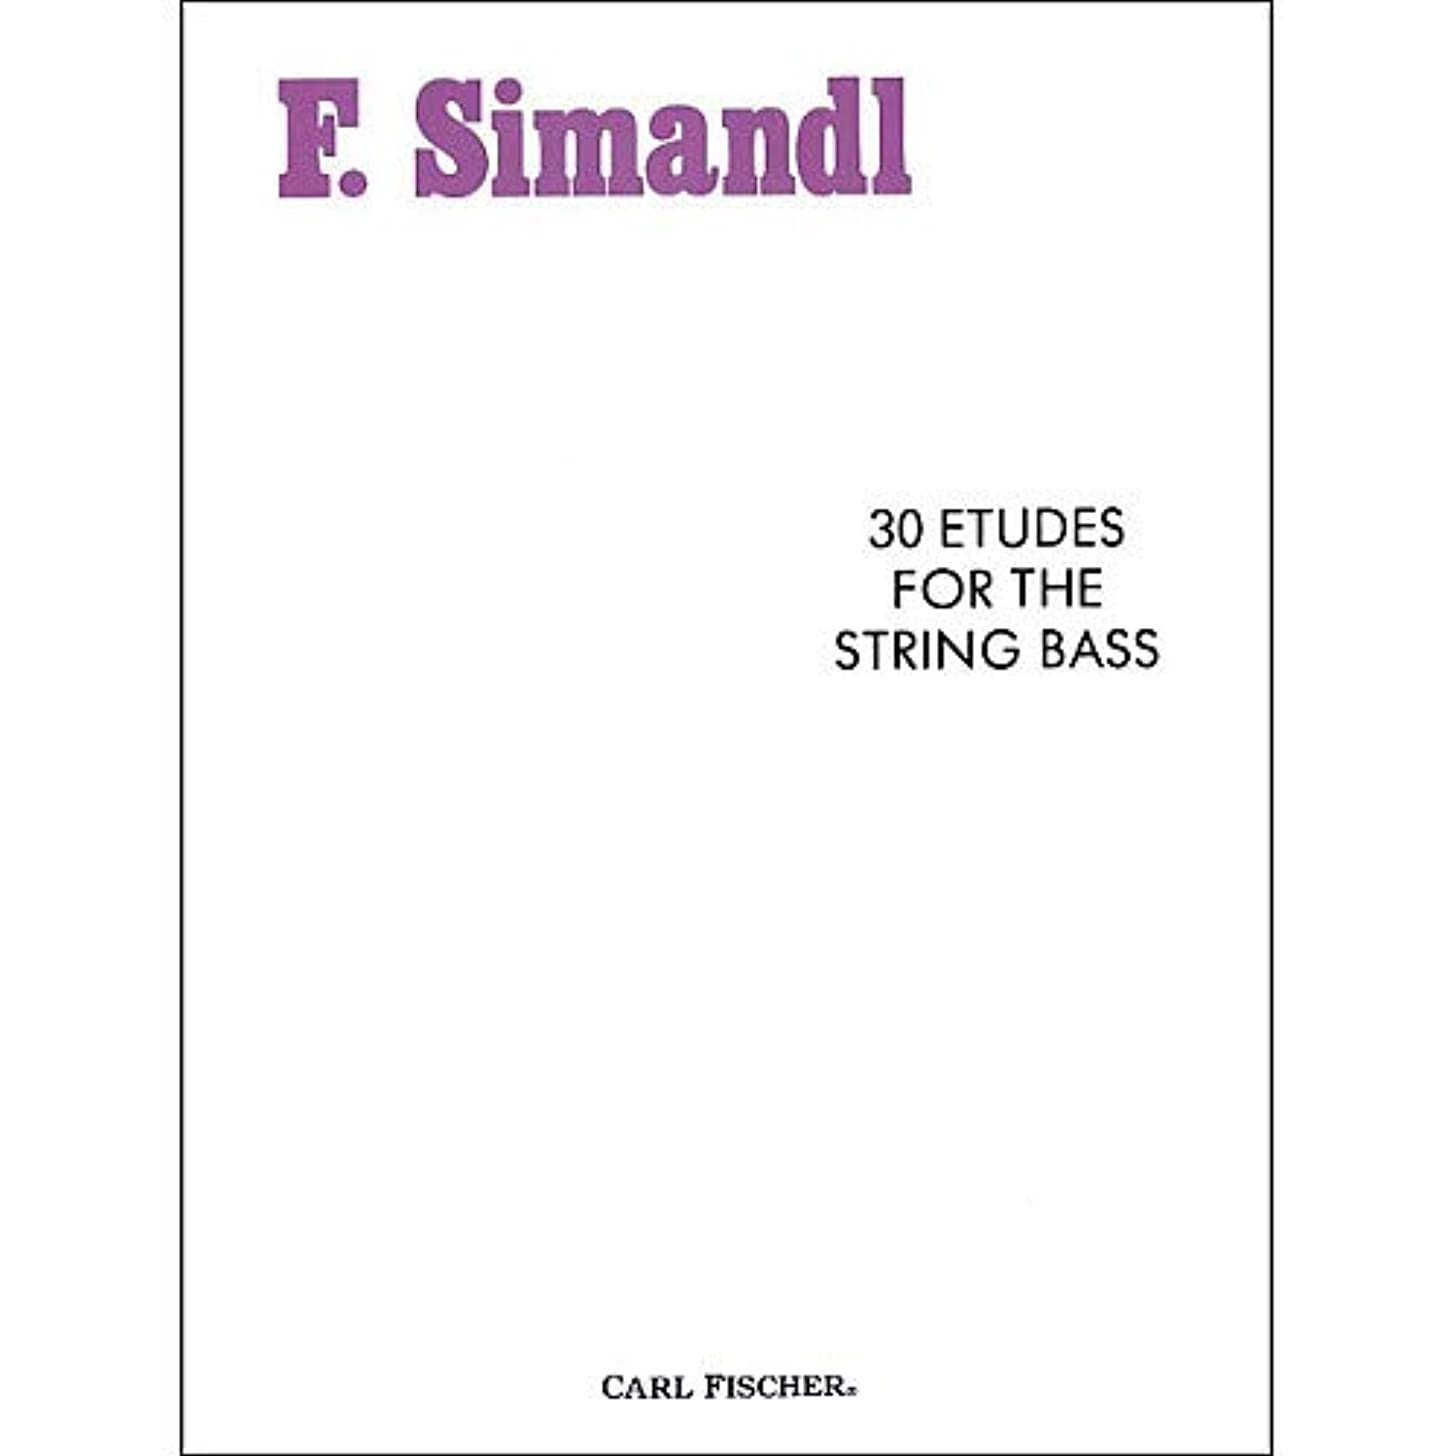 Thirty Etudes Pack of 2